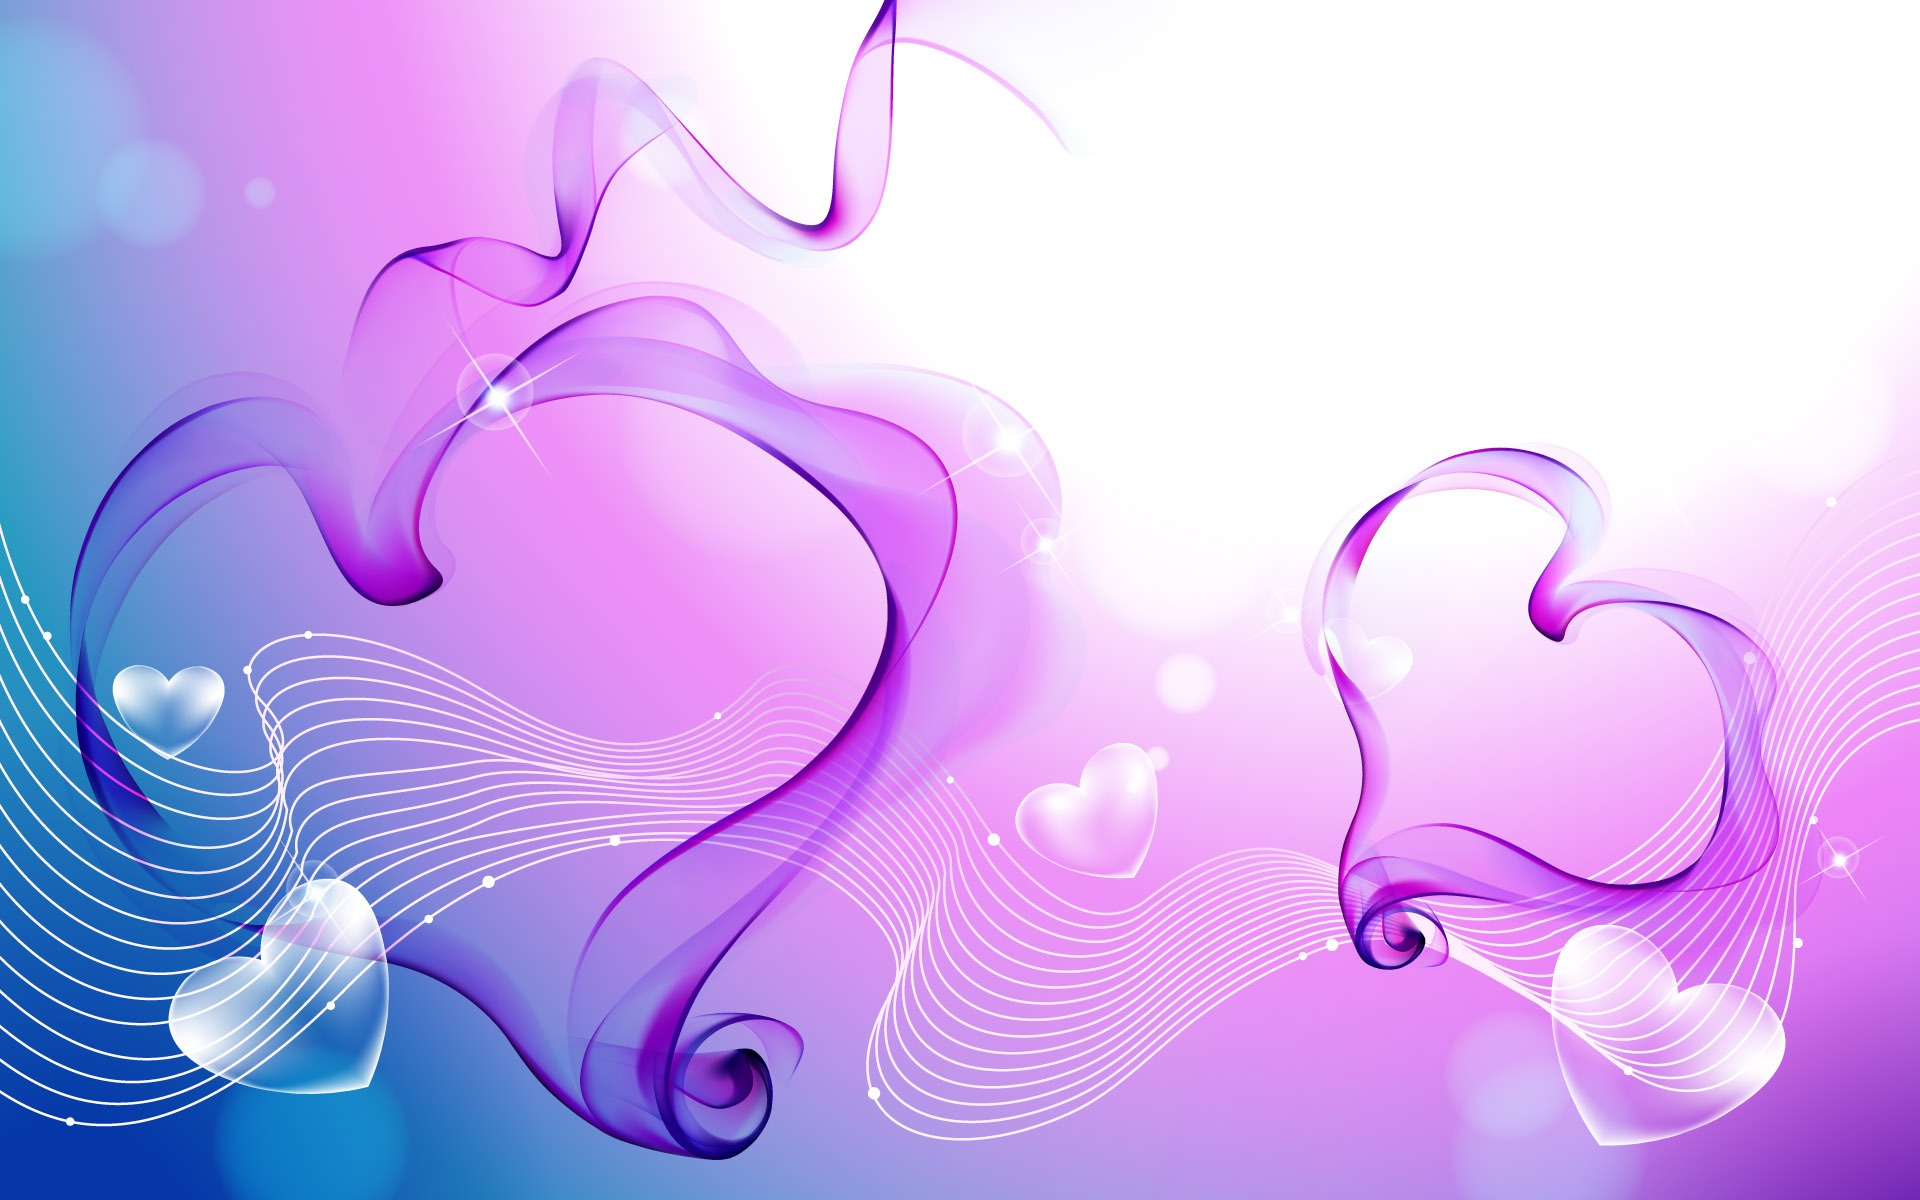 Love Theme Wallpaper In Hd : Valentine s Day Love Theme Wallpapers (3) #7 - 1920x1200 Wallpaper Download - Valentine s Day ...